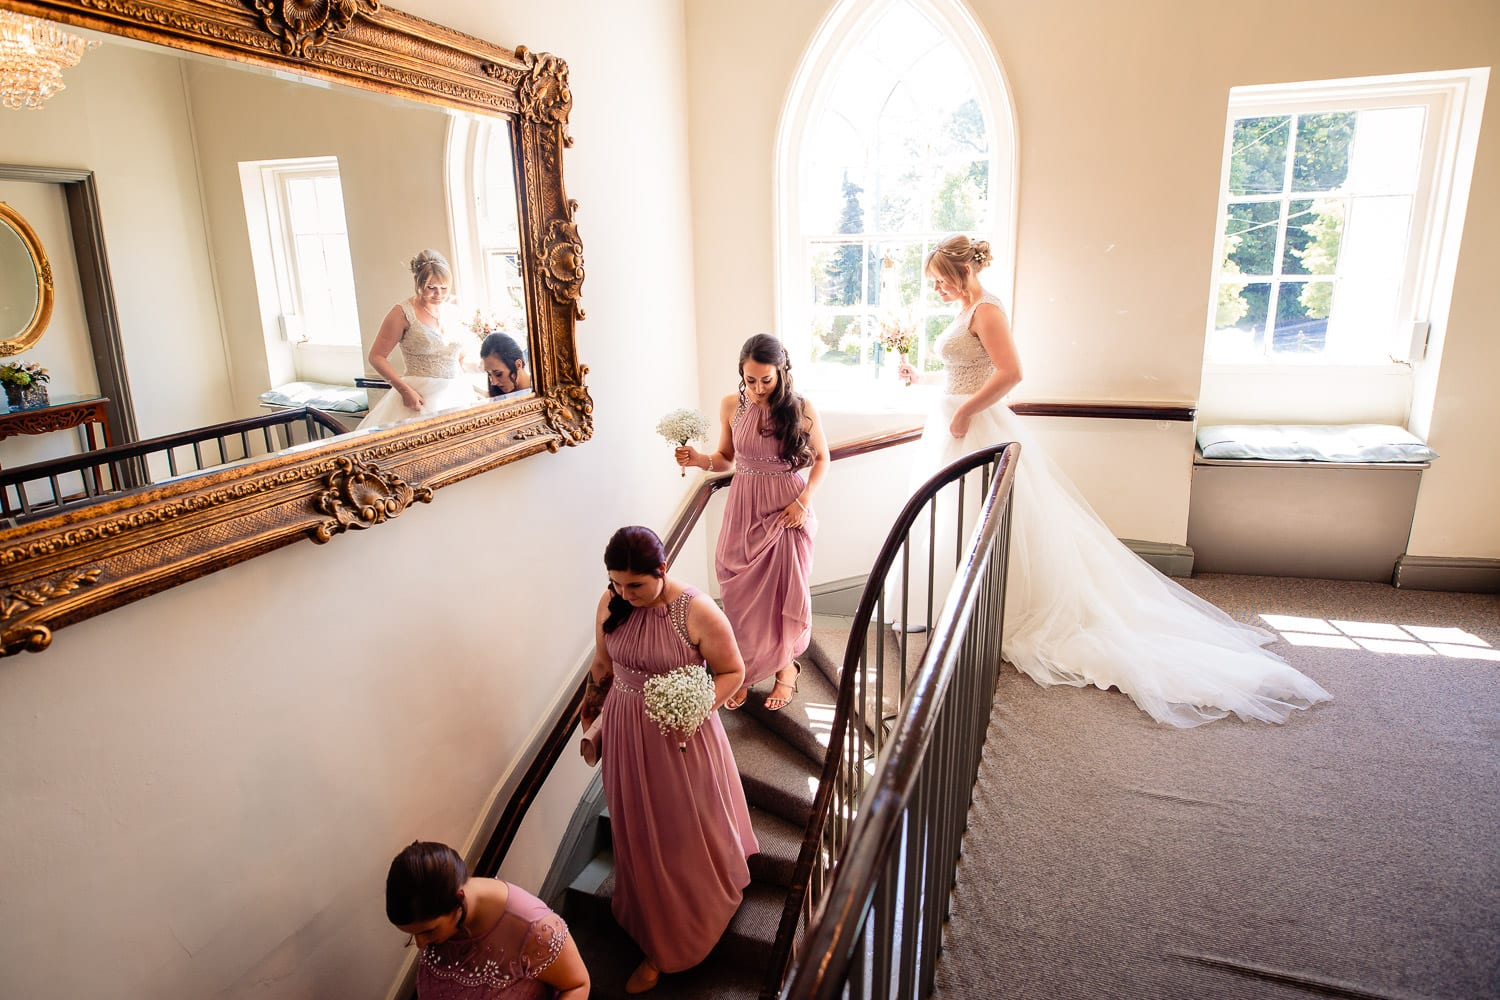 Warwick House Wedding Photography captures bridal party going down stairs to the ceremony room at Warwick House